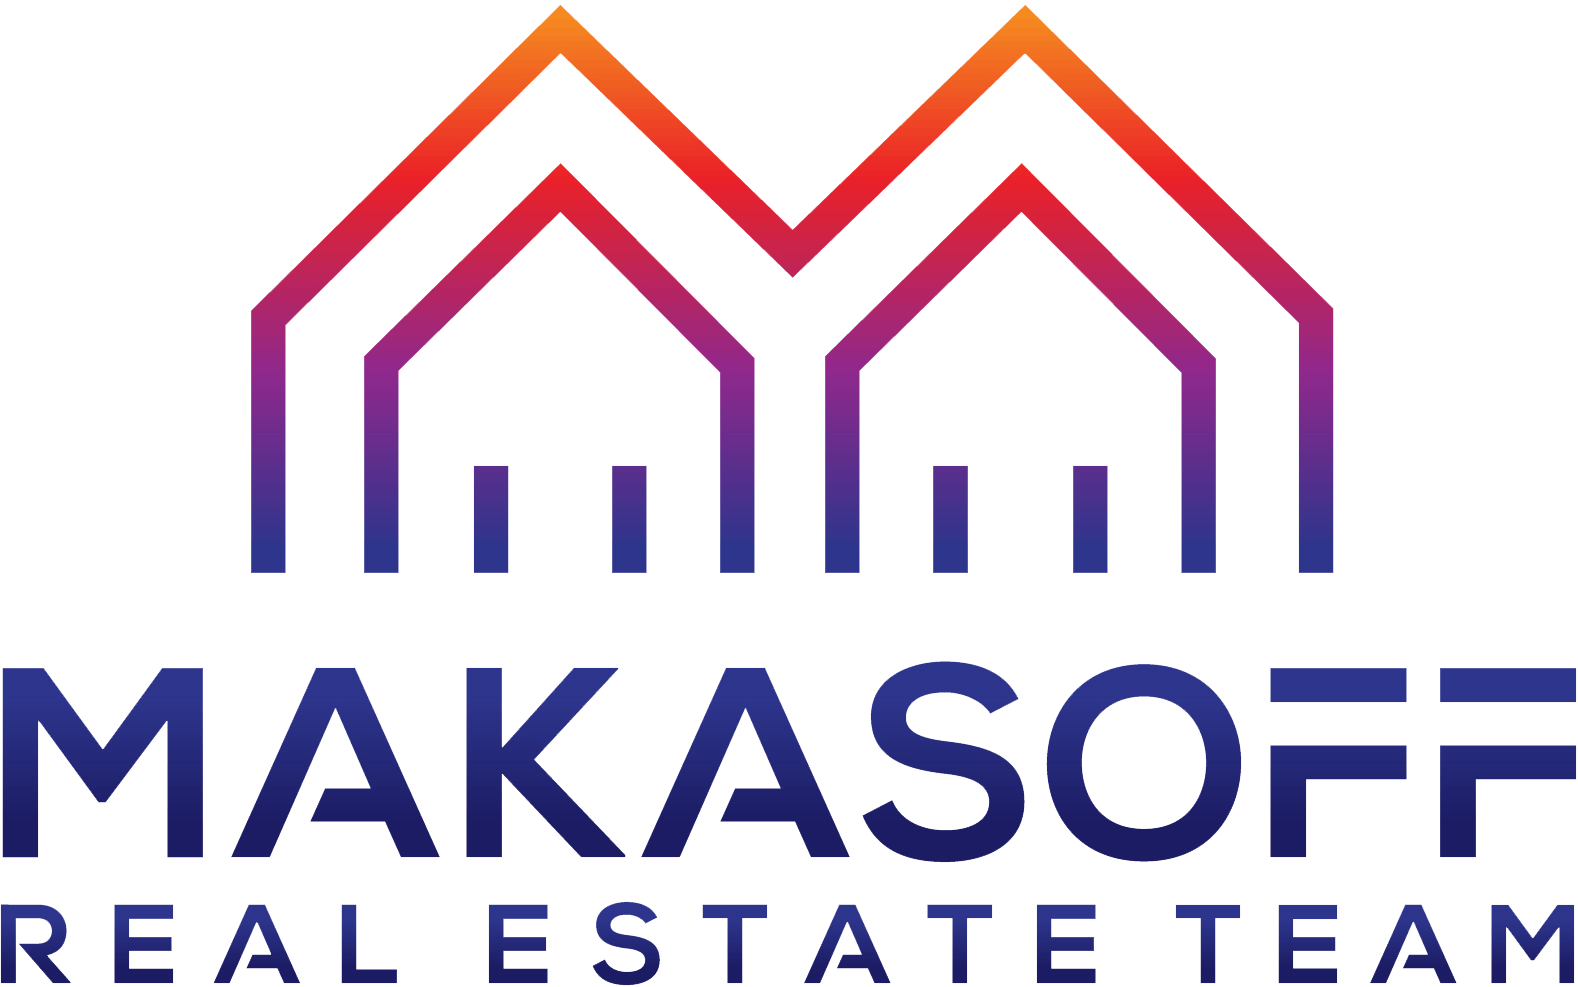 Makasoff Real Estate